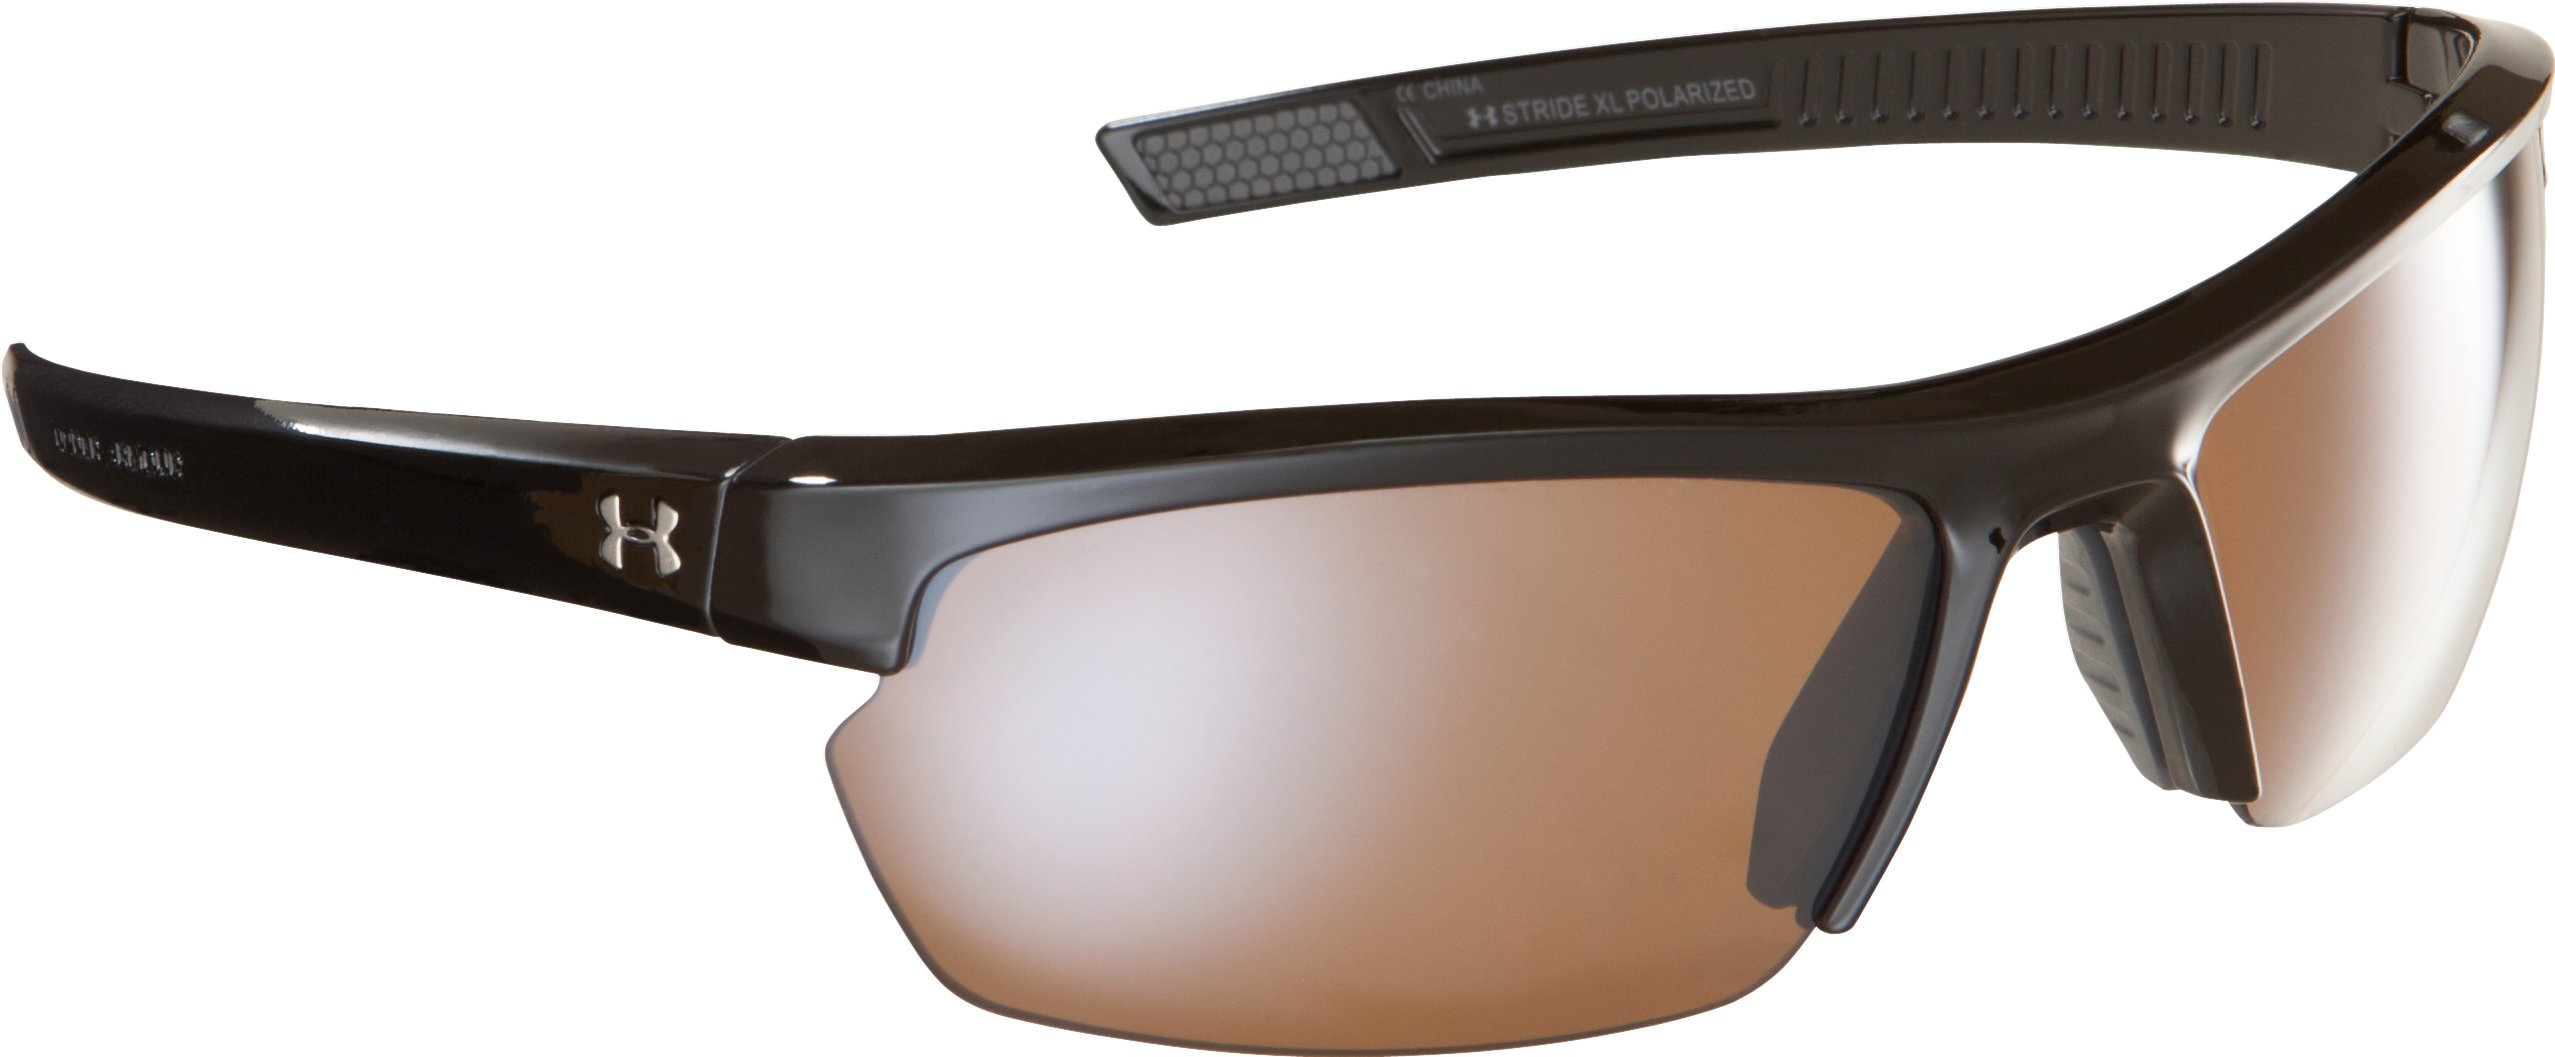 UA Stride XL Polarized Sunglasses, Shiny Black